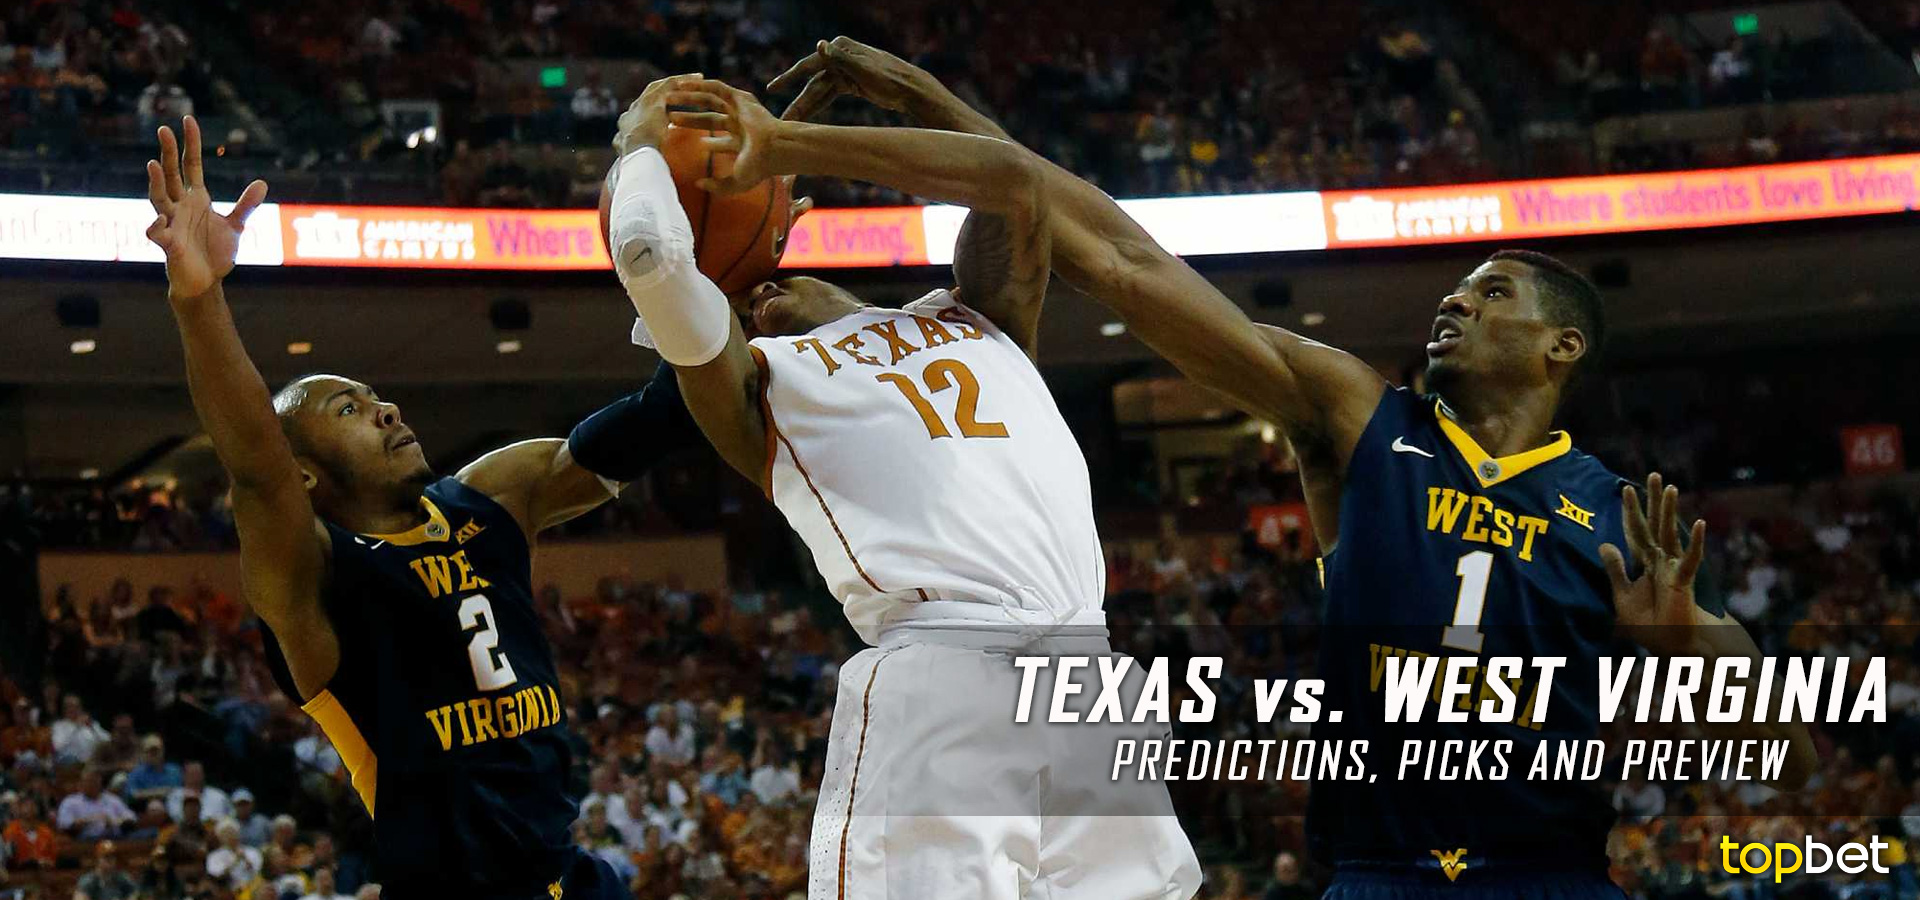 Texas vs West Virginia Basketball Predictions and Preview